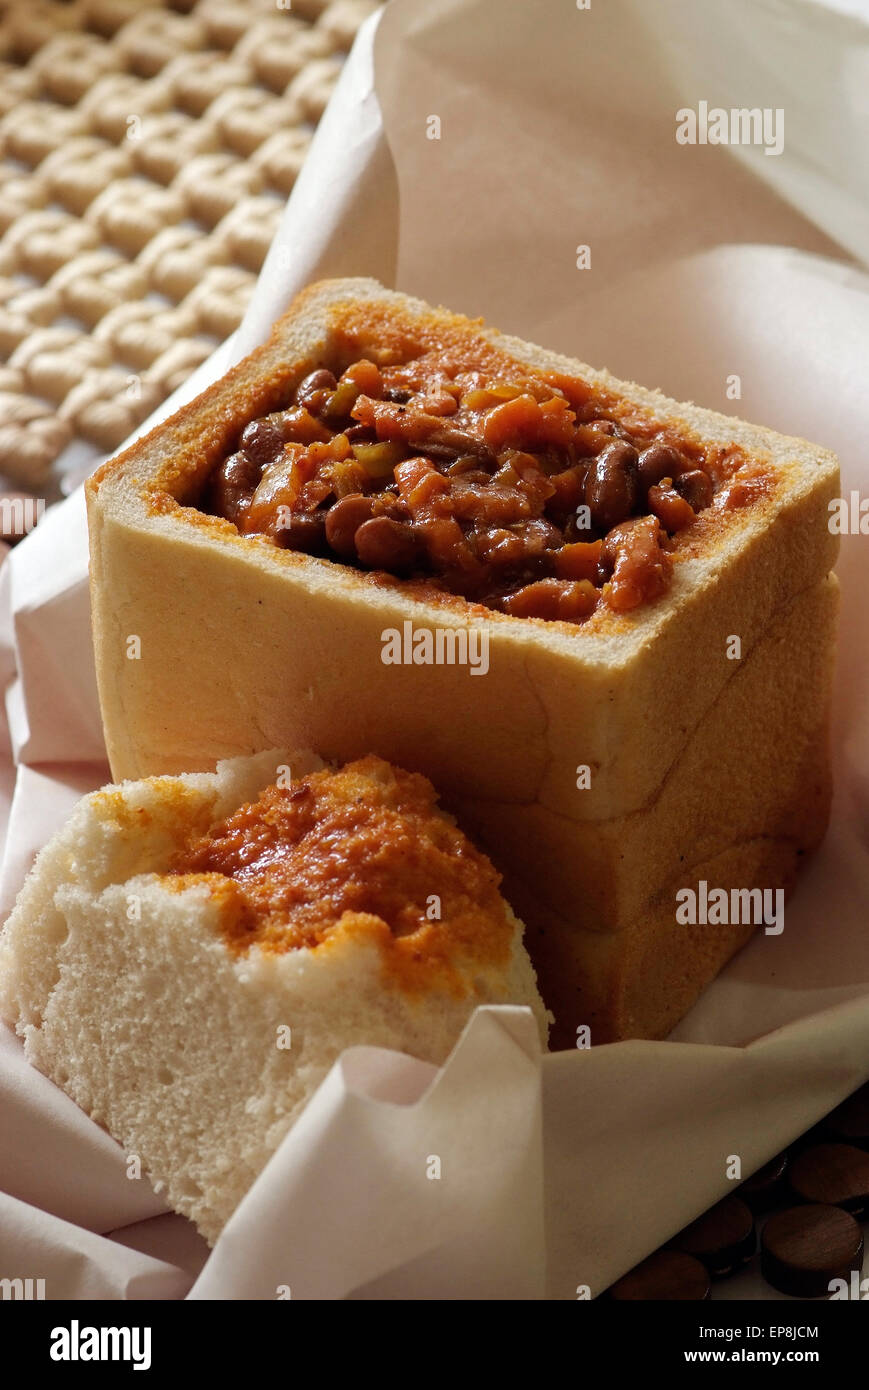 Bunny chow is a meal found exclsively in South Africa and it has its origins in Durban Kwa zulu Natal it is curry - Stock Image